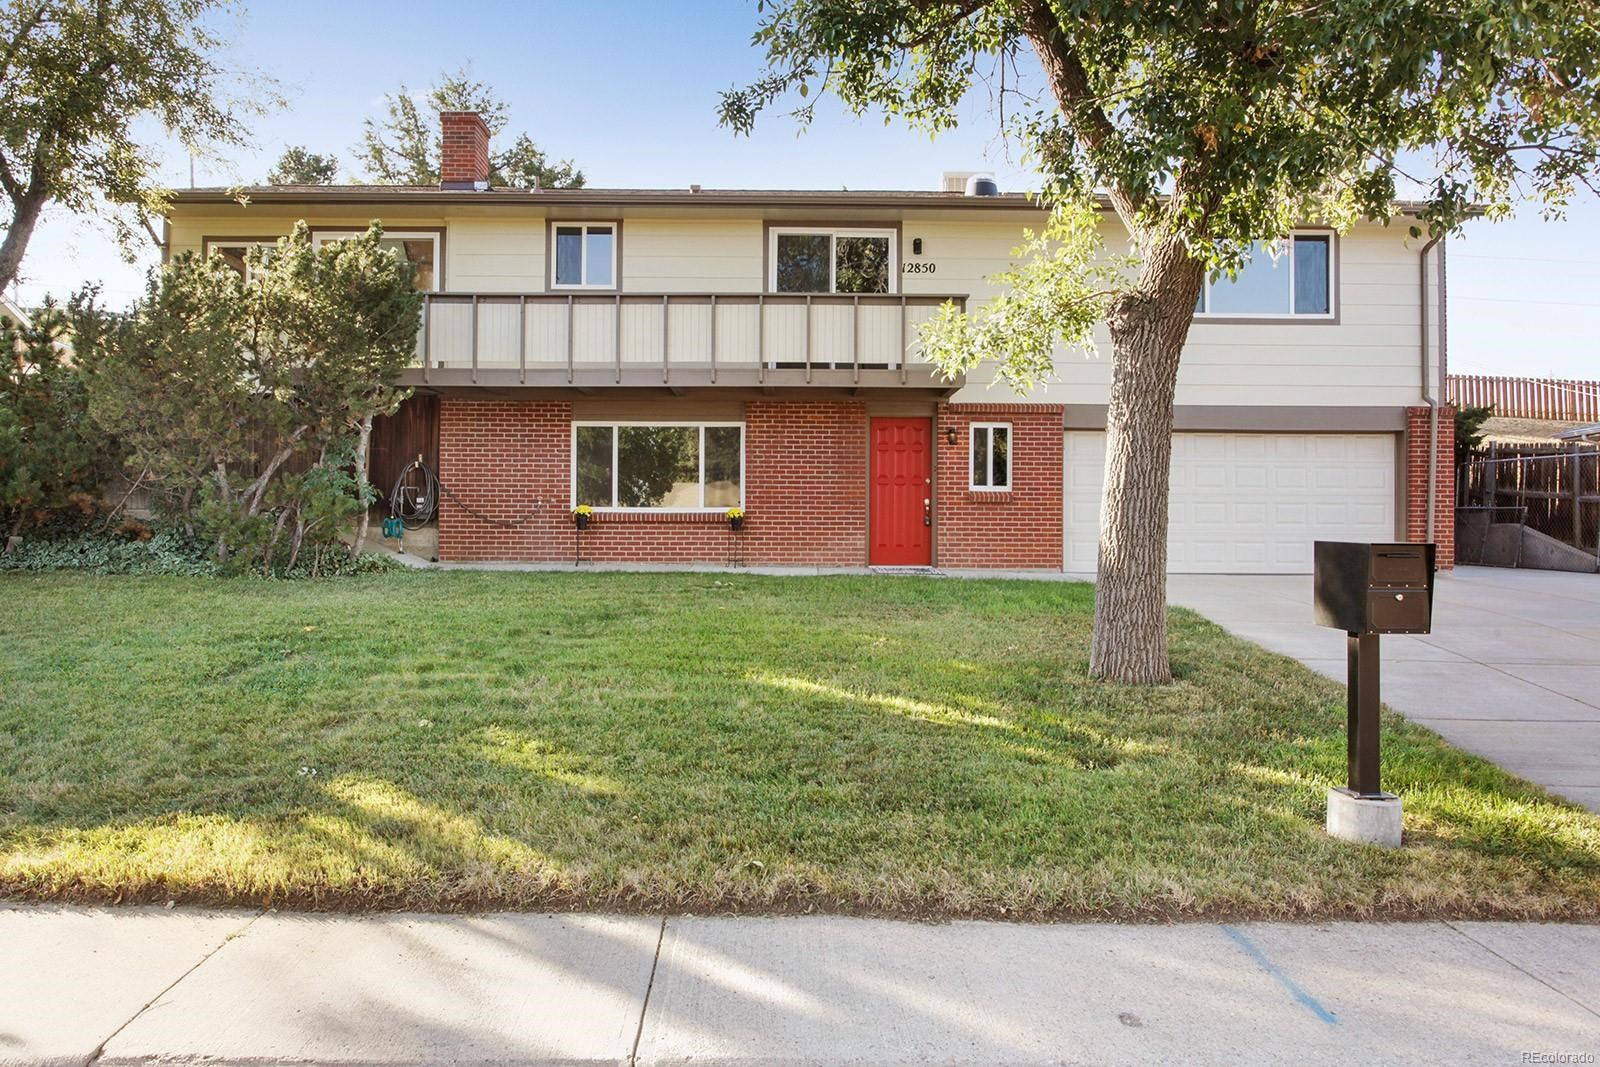 MLS# 5056958 - 1 - 12850 W 6th Place, Lakewood, CO 80401